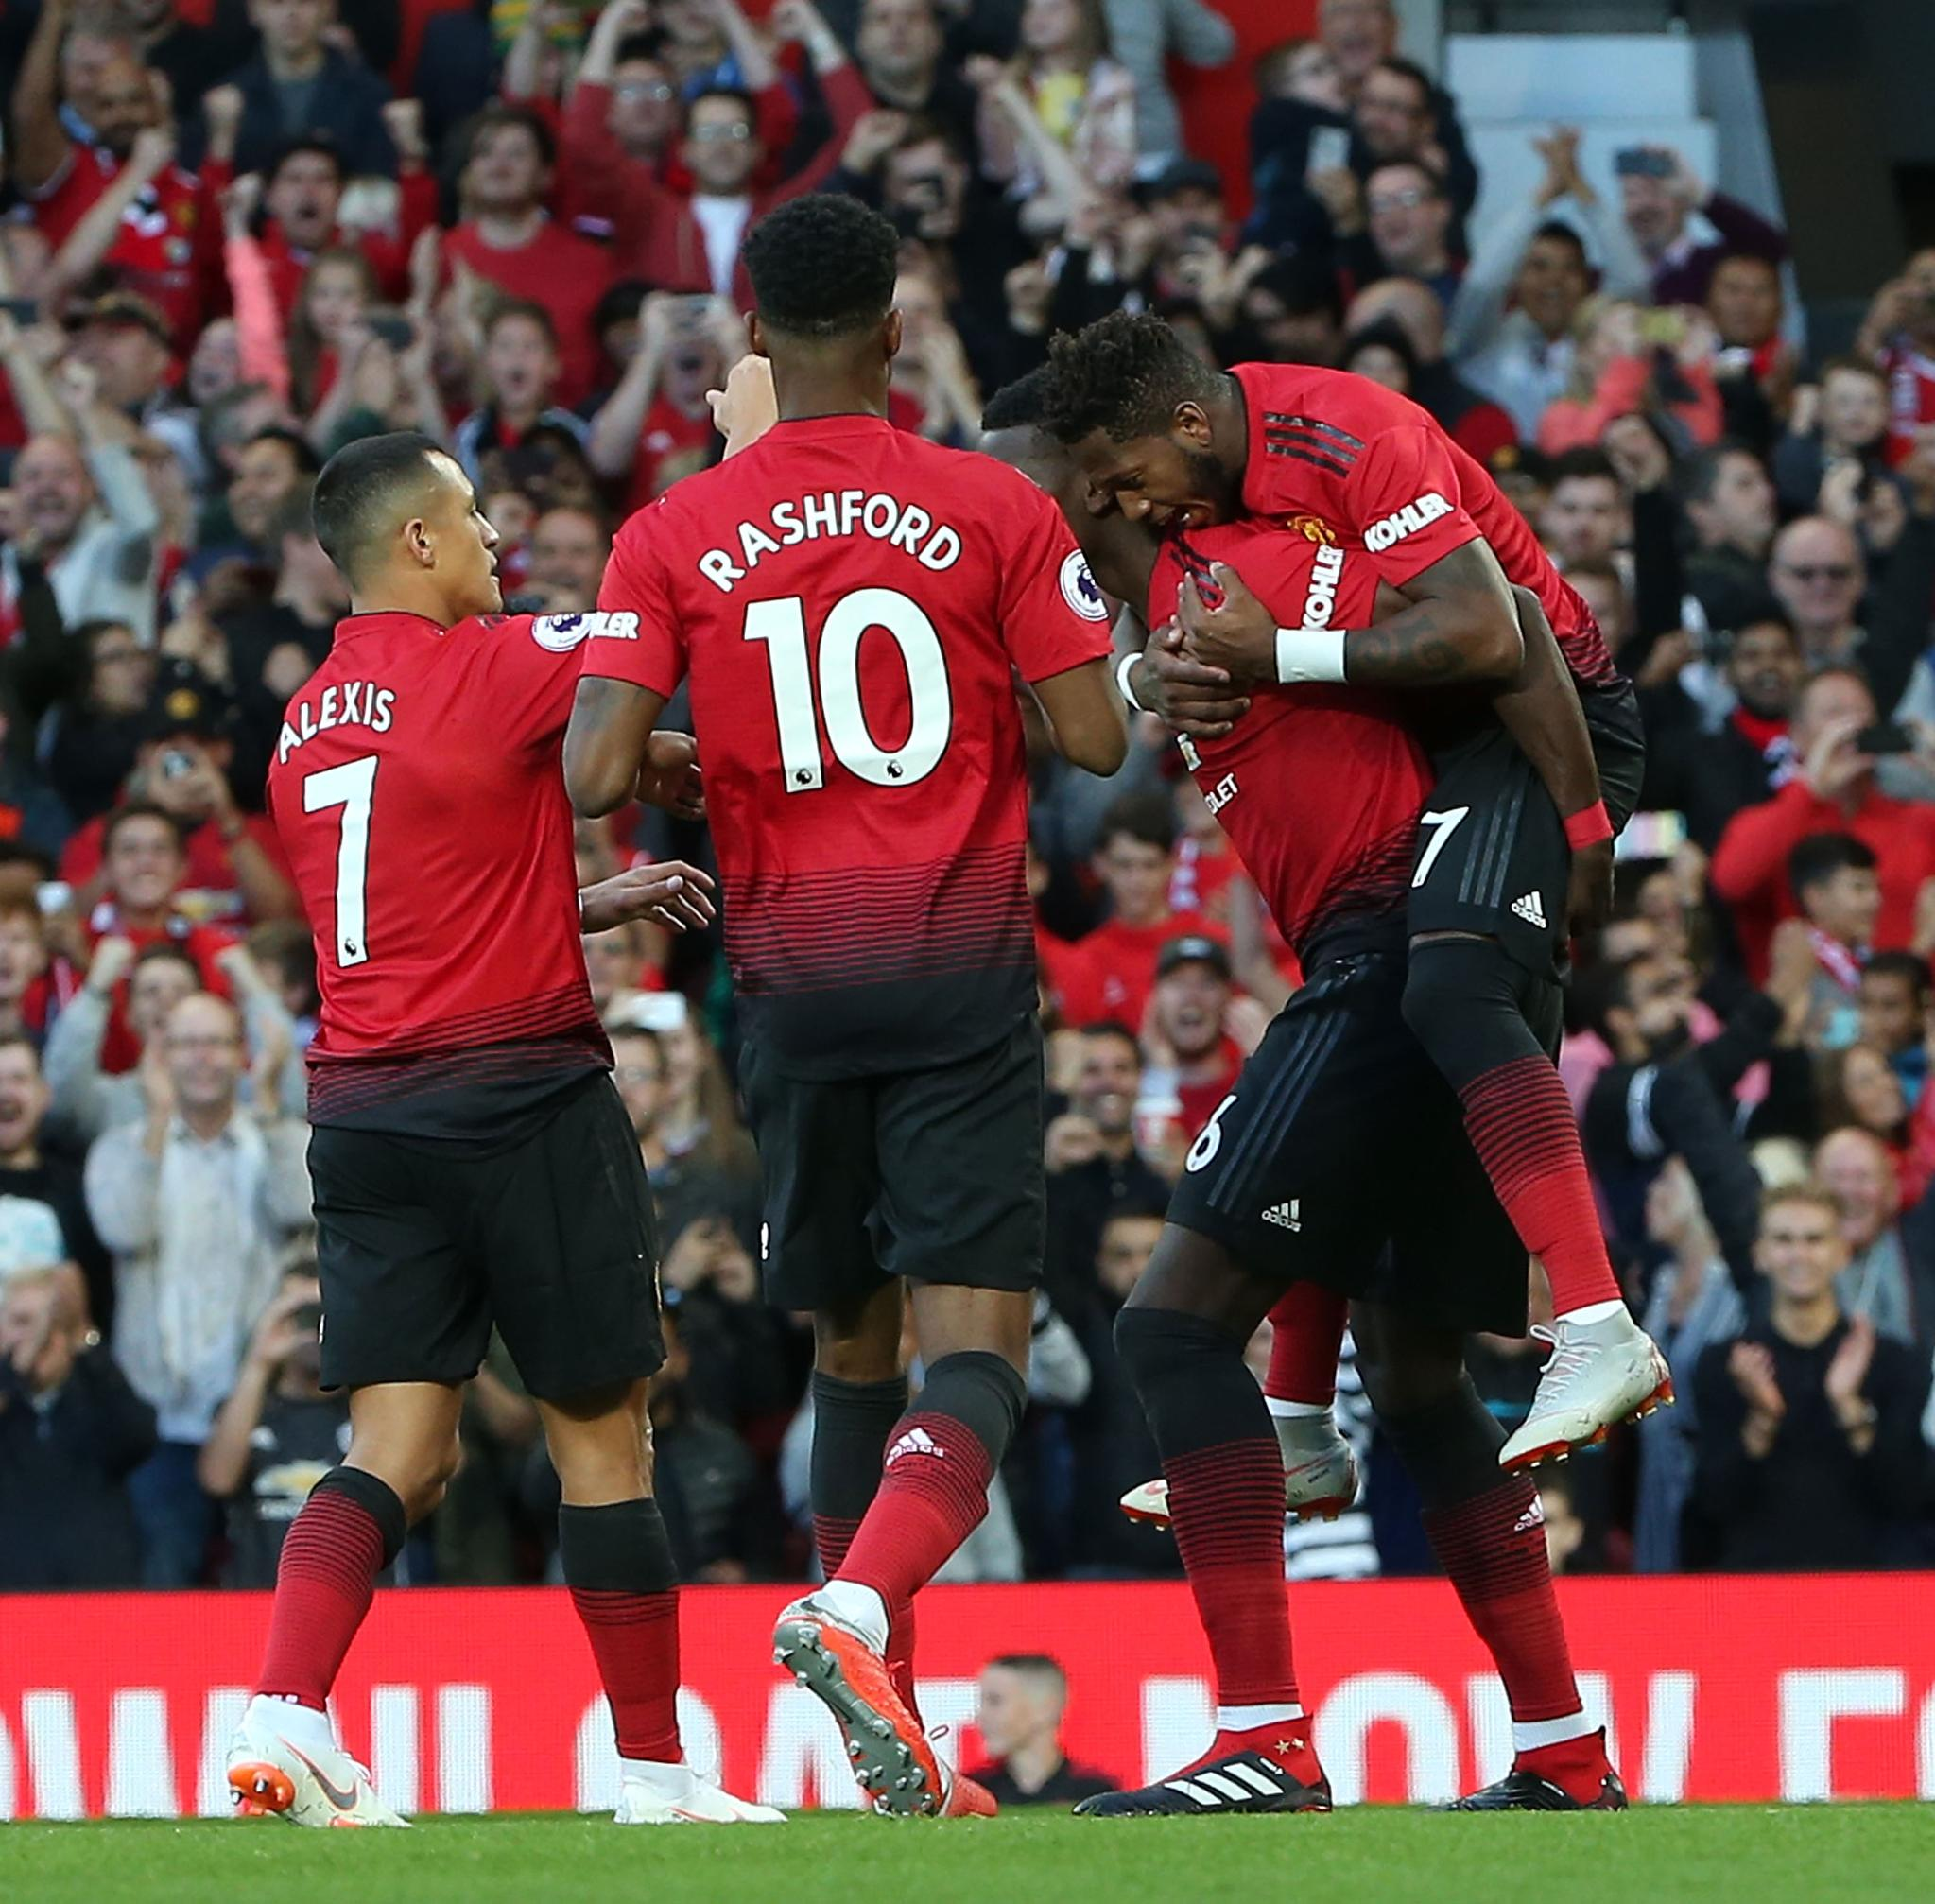 �� @ManUtd  have won 9 of their last 10 #PL matches against @WatfordFC    #WATMUN https://t.co/W2zUeb2Lld